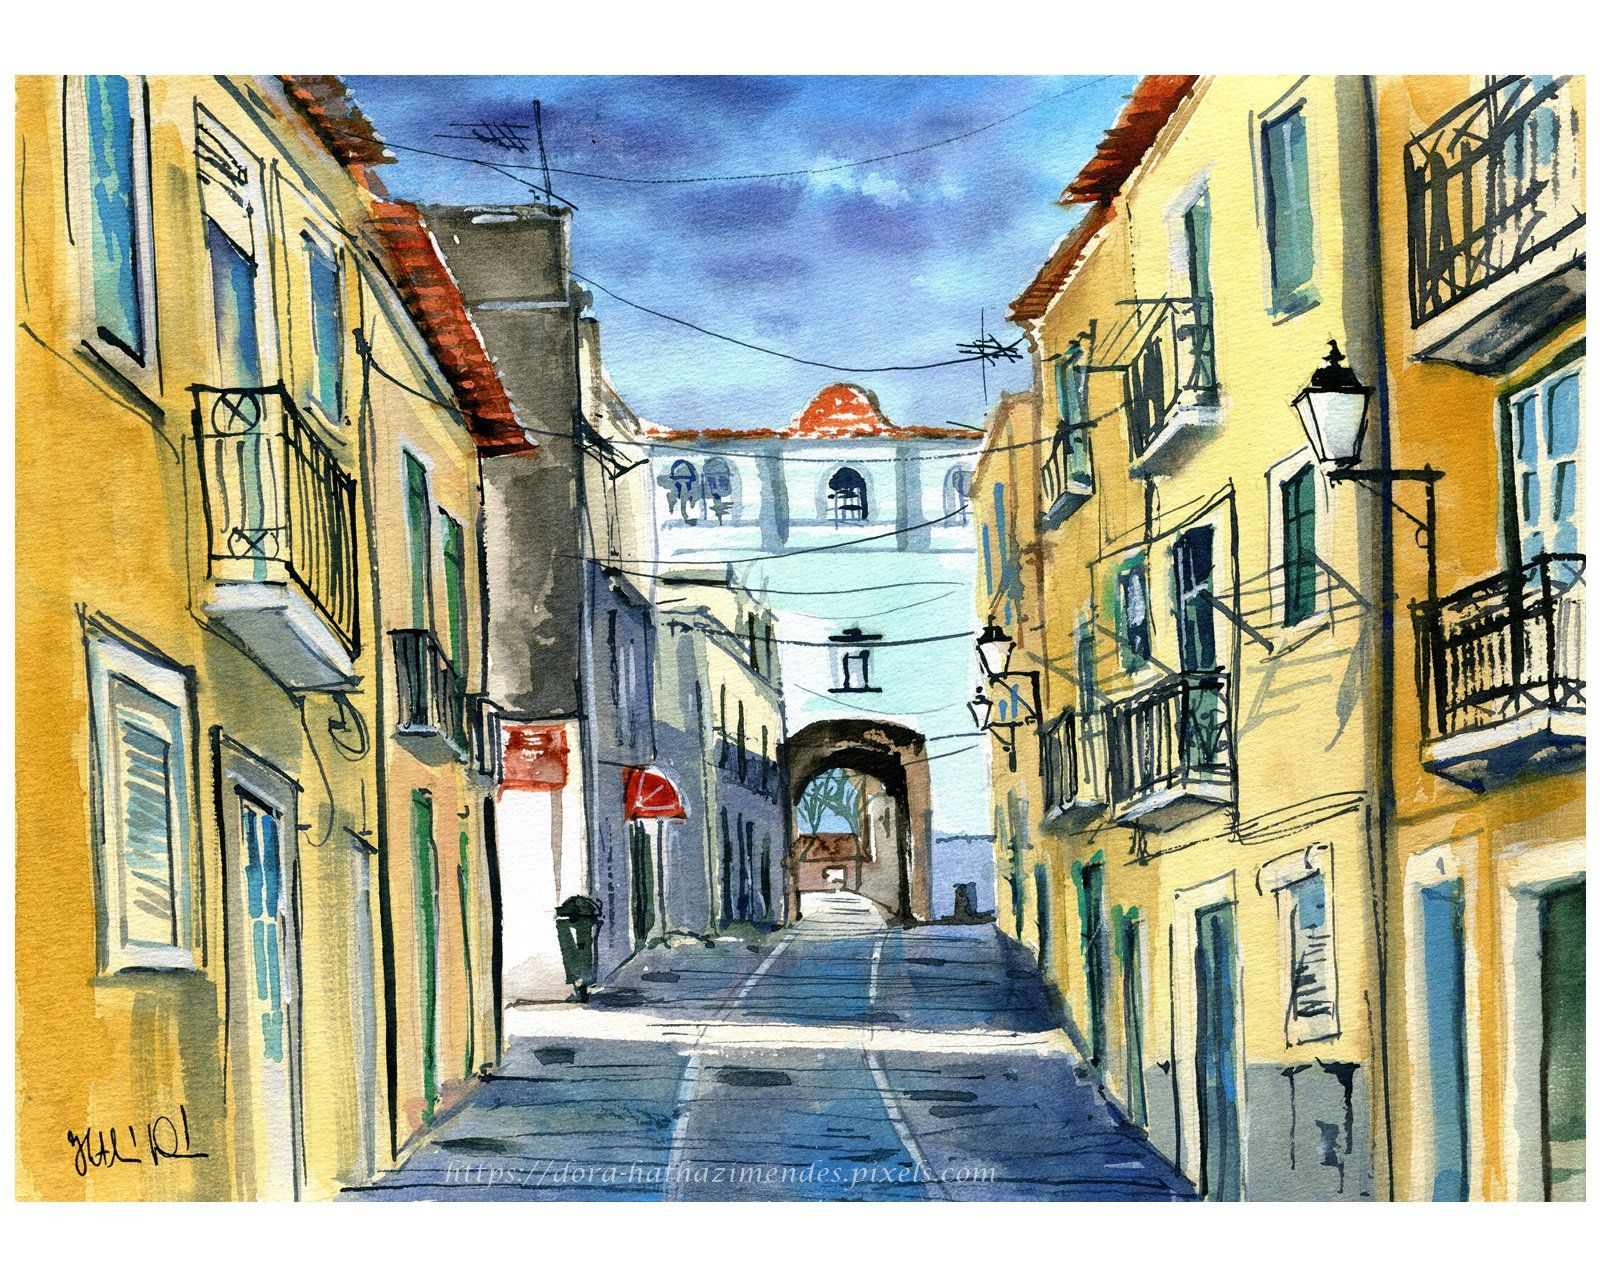 Original Portugal Painting Old Town Setubal Handmade Watercolor Portuguese Art Portugal Paintings Portugal Wall Art Street Painting Setubal Old Town